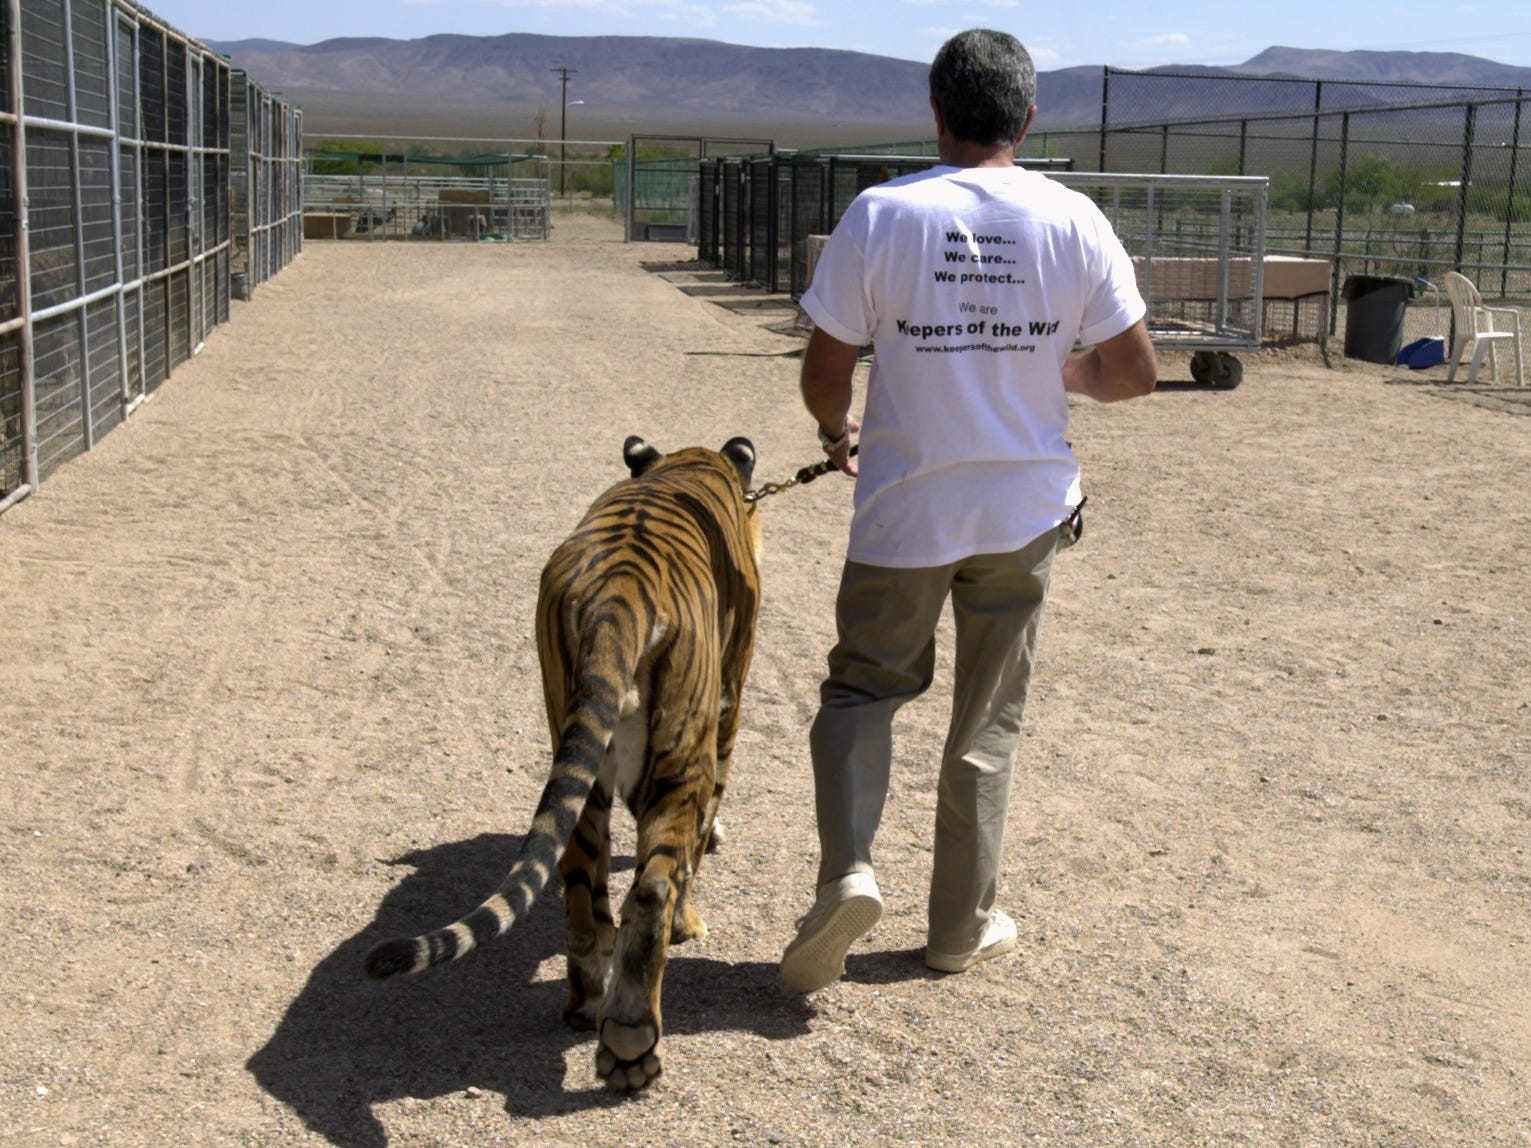 Jonathan Kraft, founder and executive director, walks a Bengal tiger at the Keepers of the Wild Exotic Animal Sanctuary on September 11, 2001.